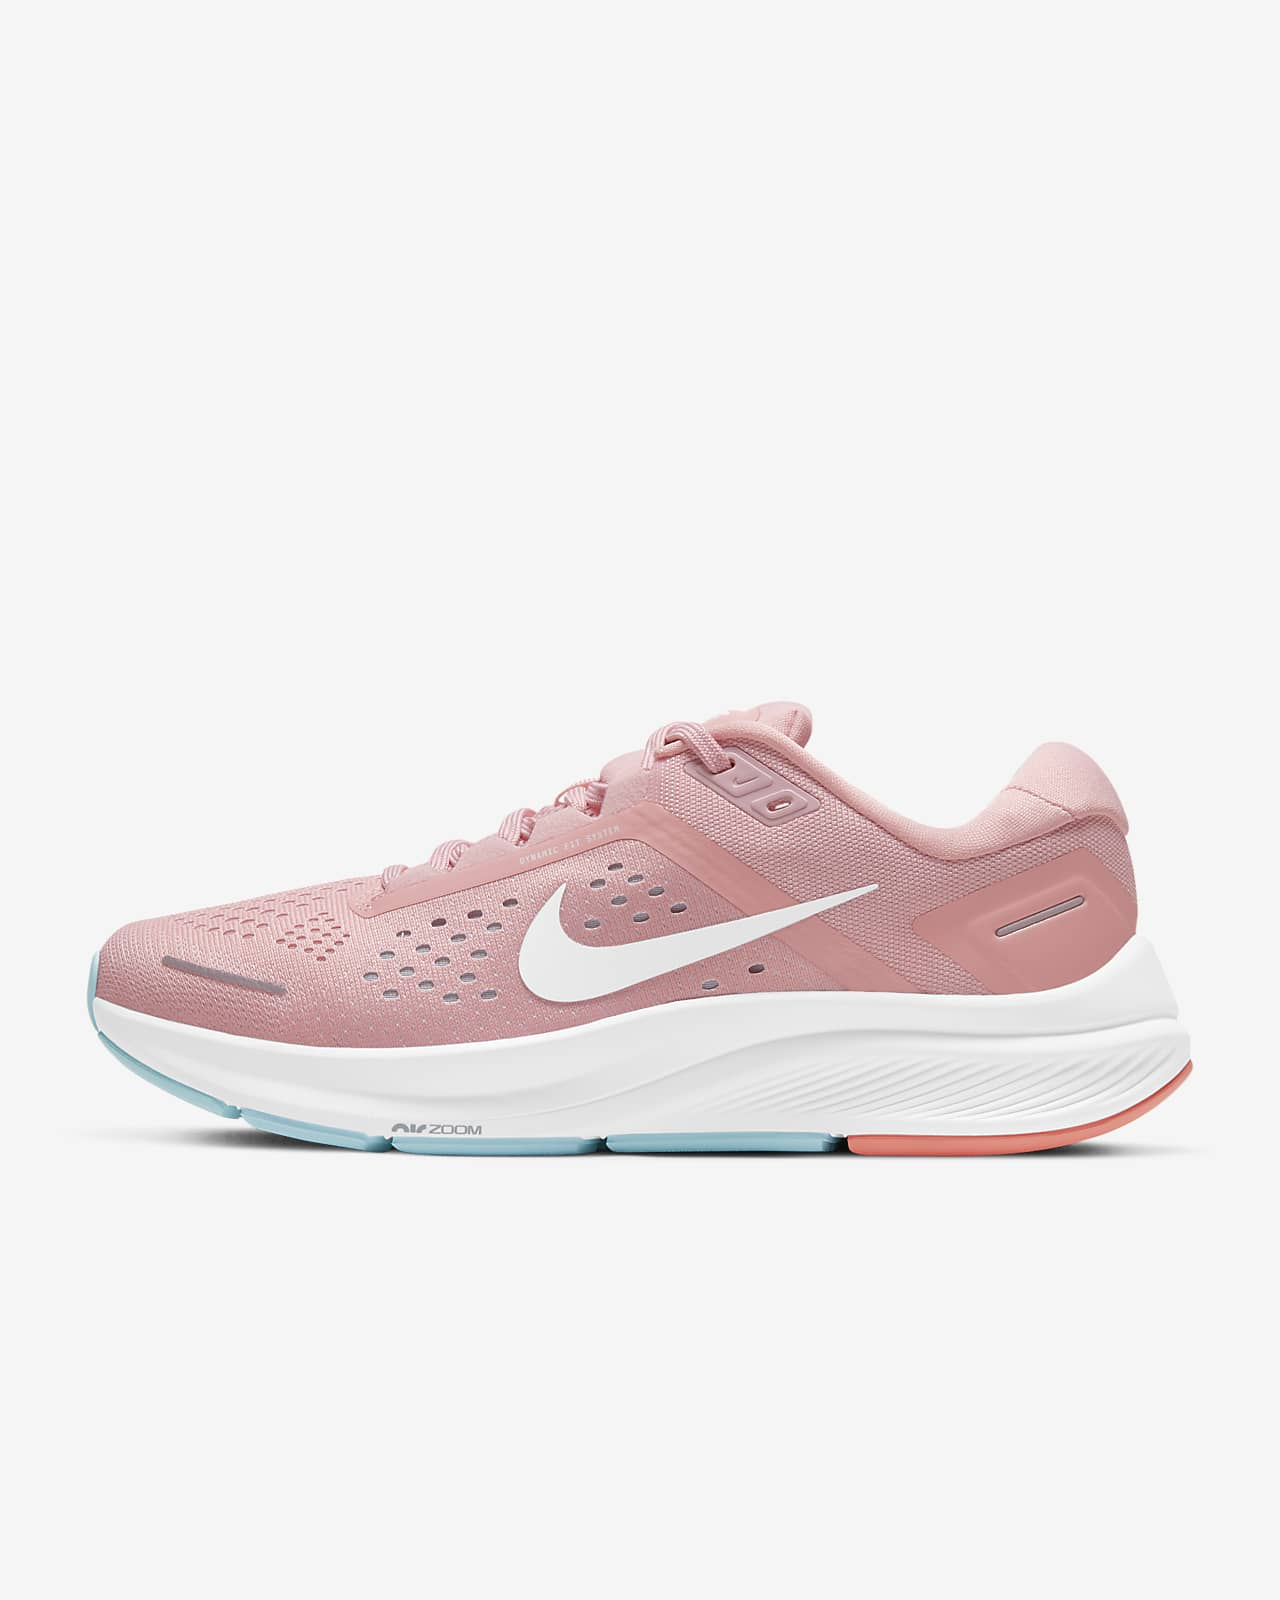 Nike Air Zoom Structure 23 Women's Road Running Shoes